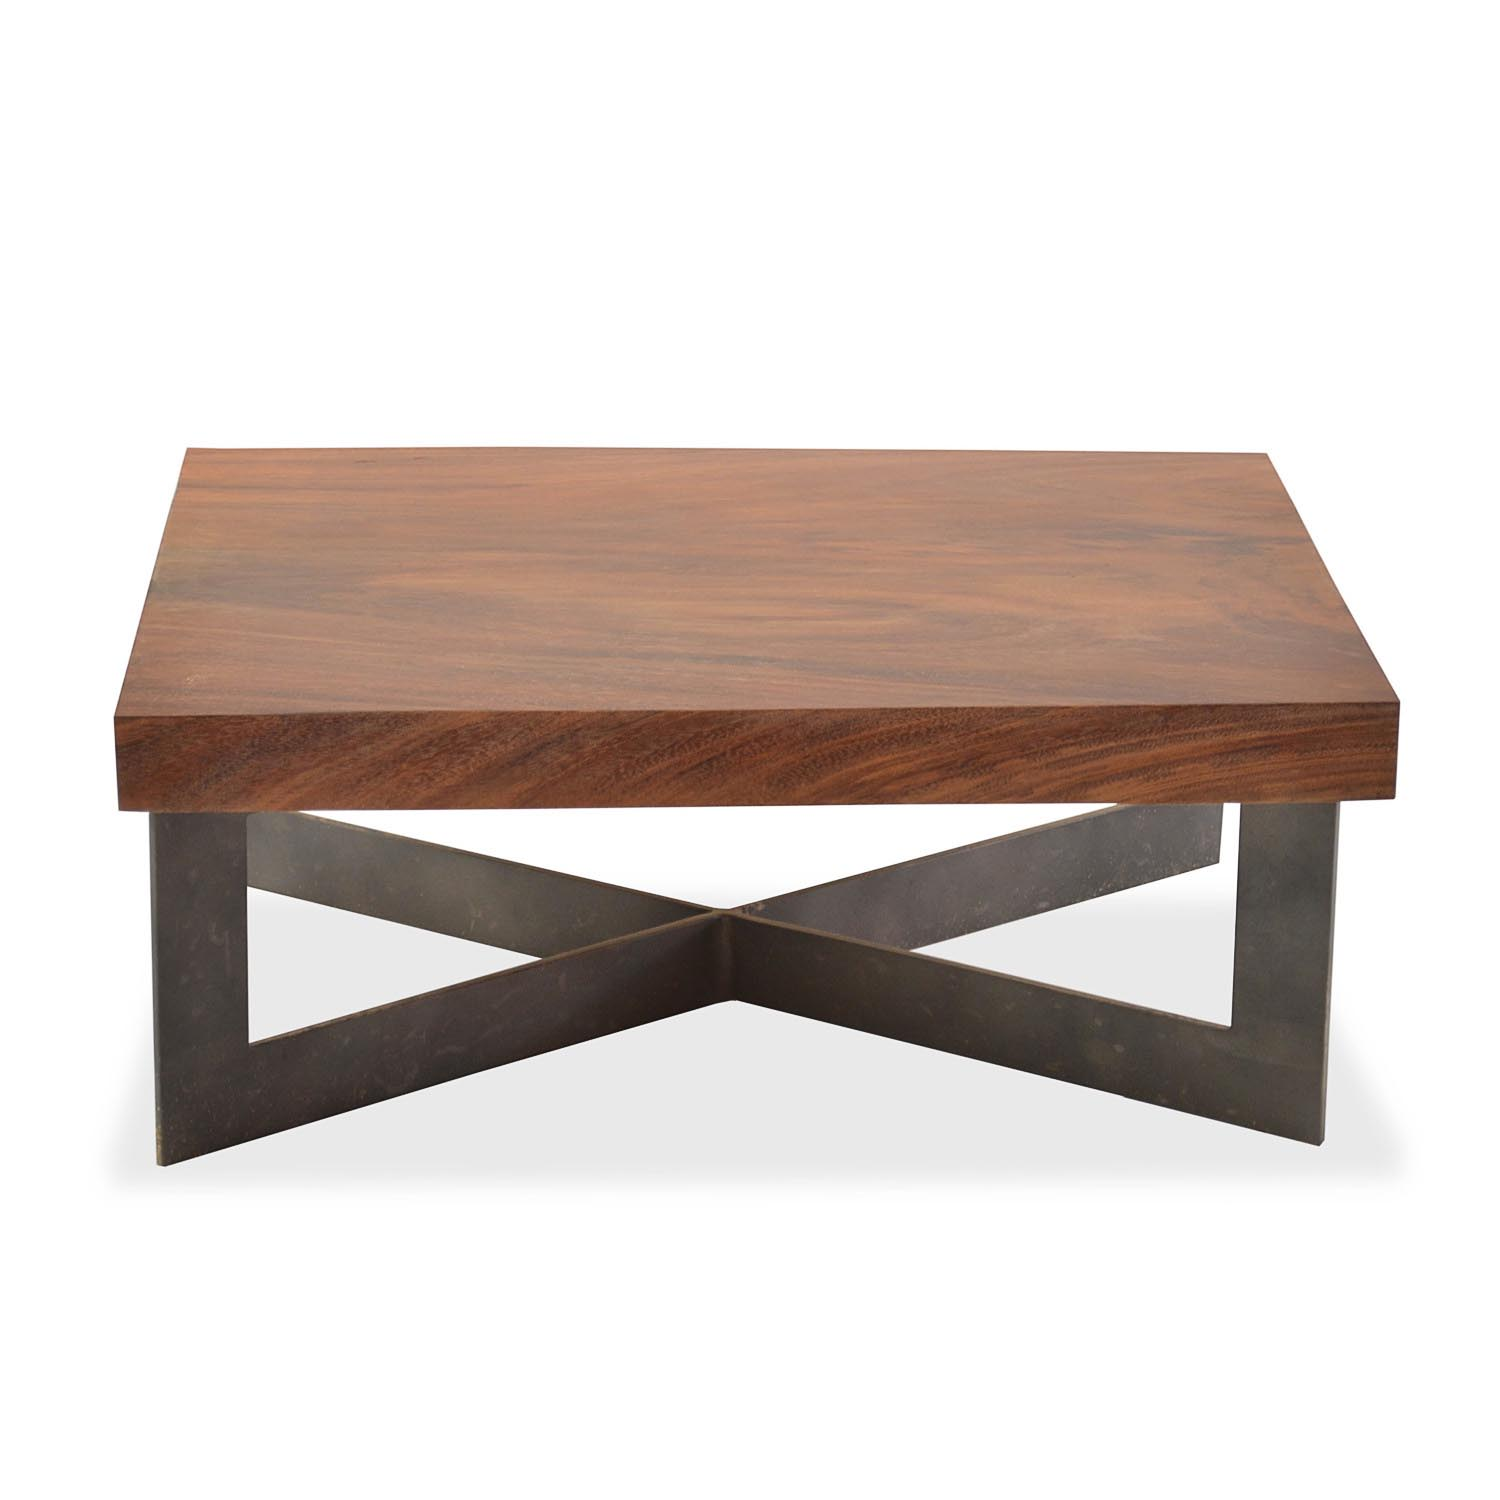 Solid wood slab coffee table coffee table design ideas for Oak slab coffee table